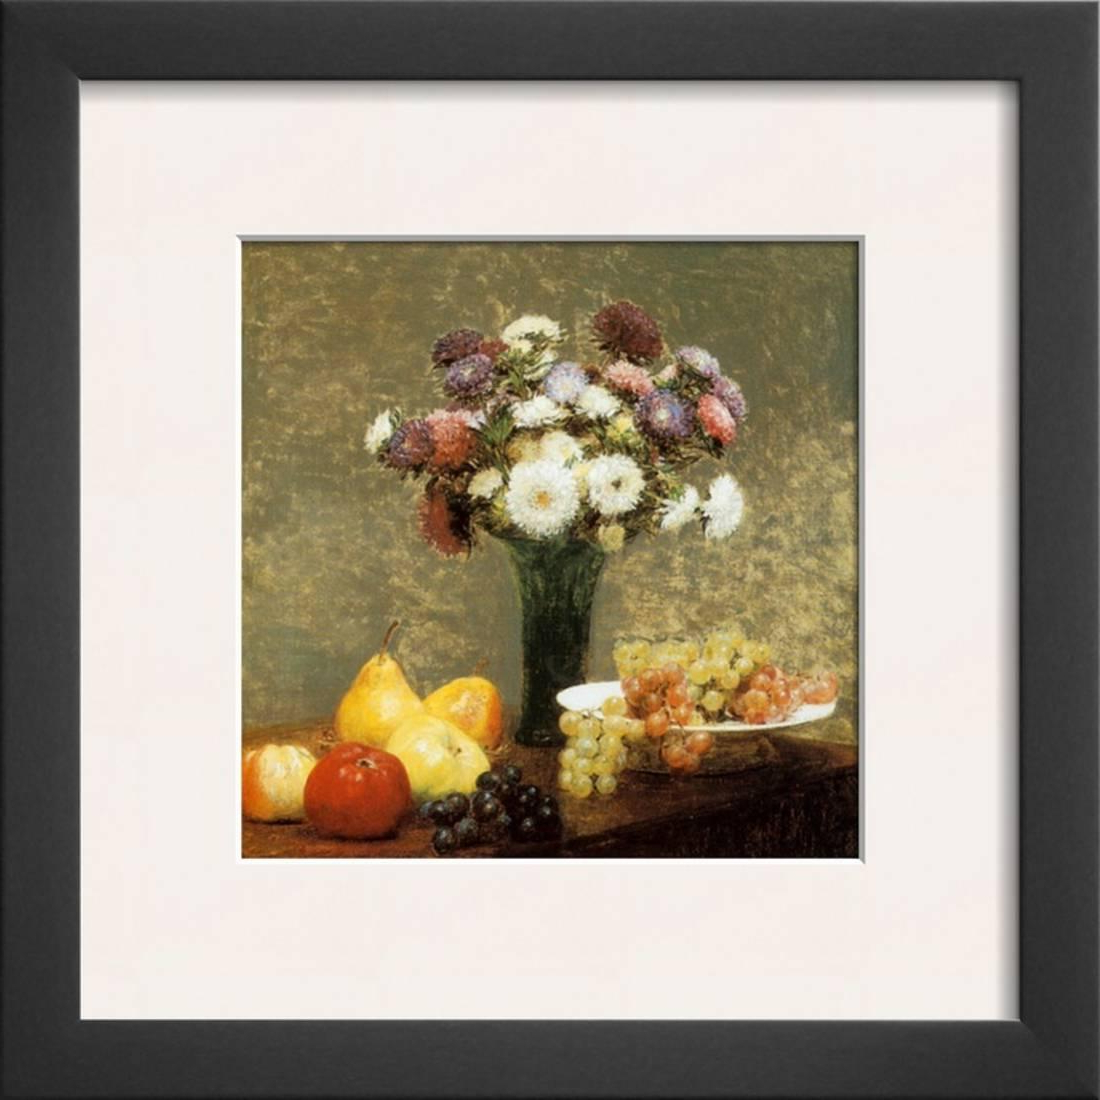 Preferred Latour Wall Decor Intended For Asters And Fruit Framed Art Print Wall Arthenri Fantin Latour (View 17 of 20)